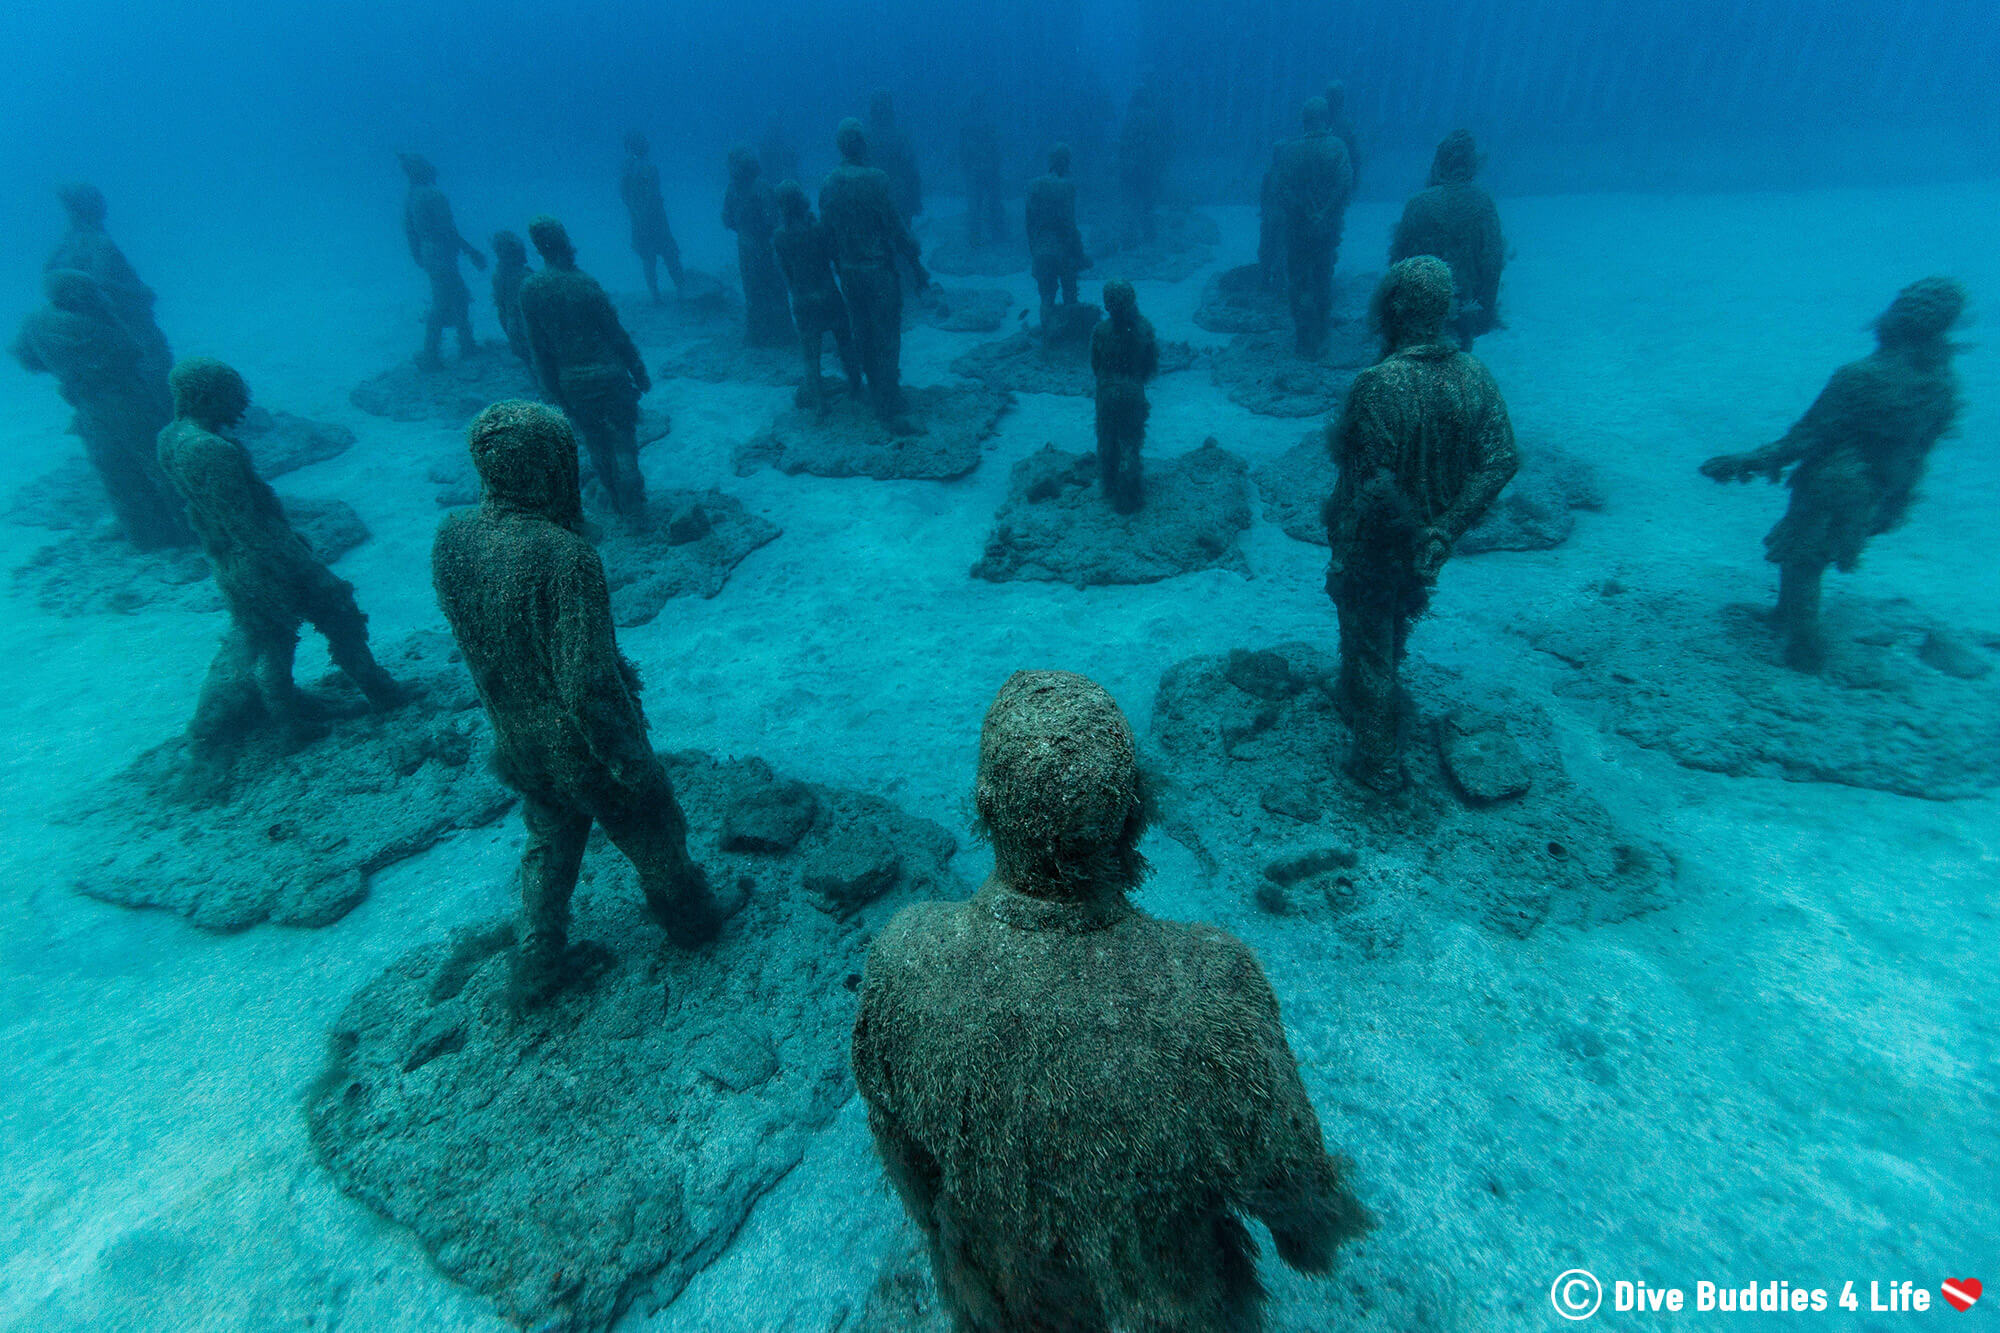 Underwater Statues From The Museo Atlantico In Lanzarote, Canary Islands, Spain